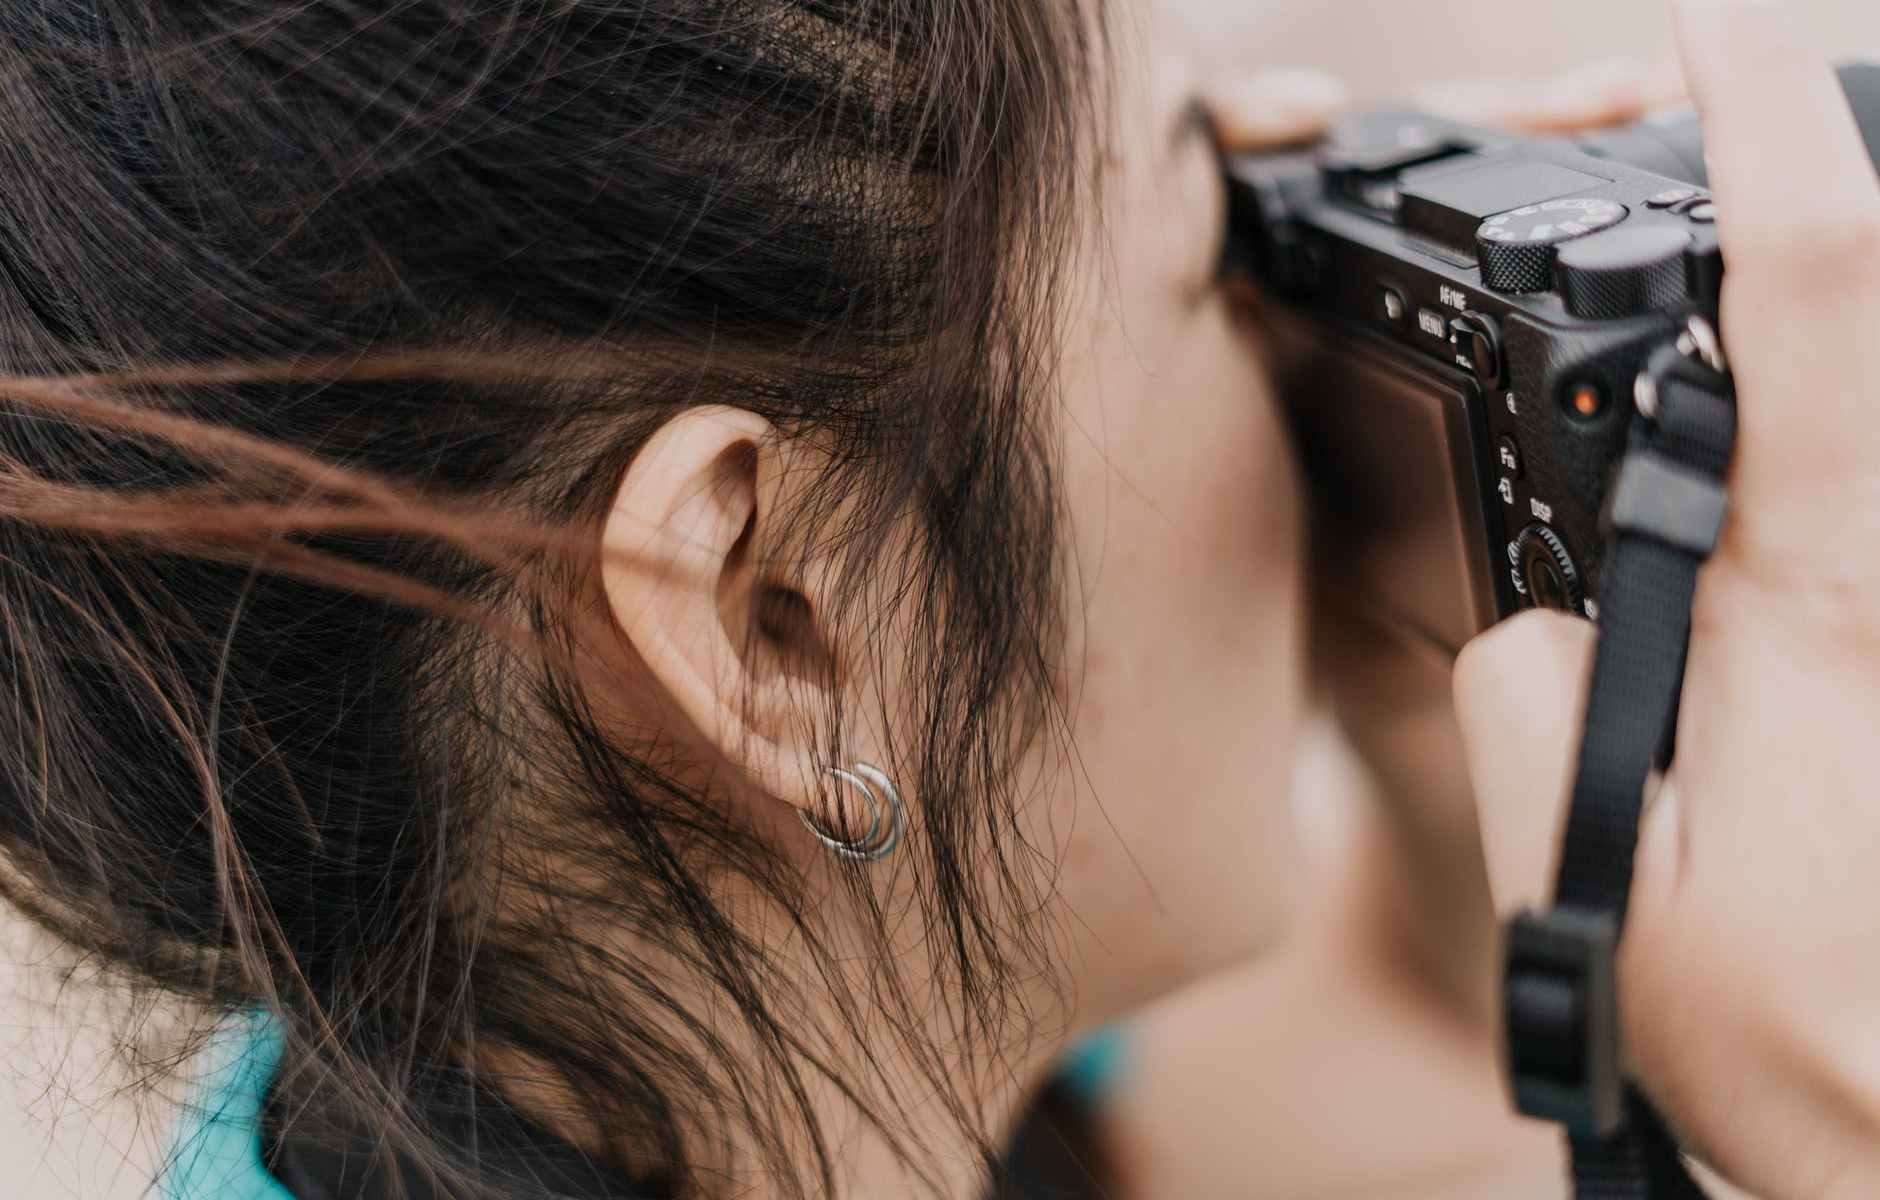 close up photo of woman holding a camera